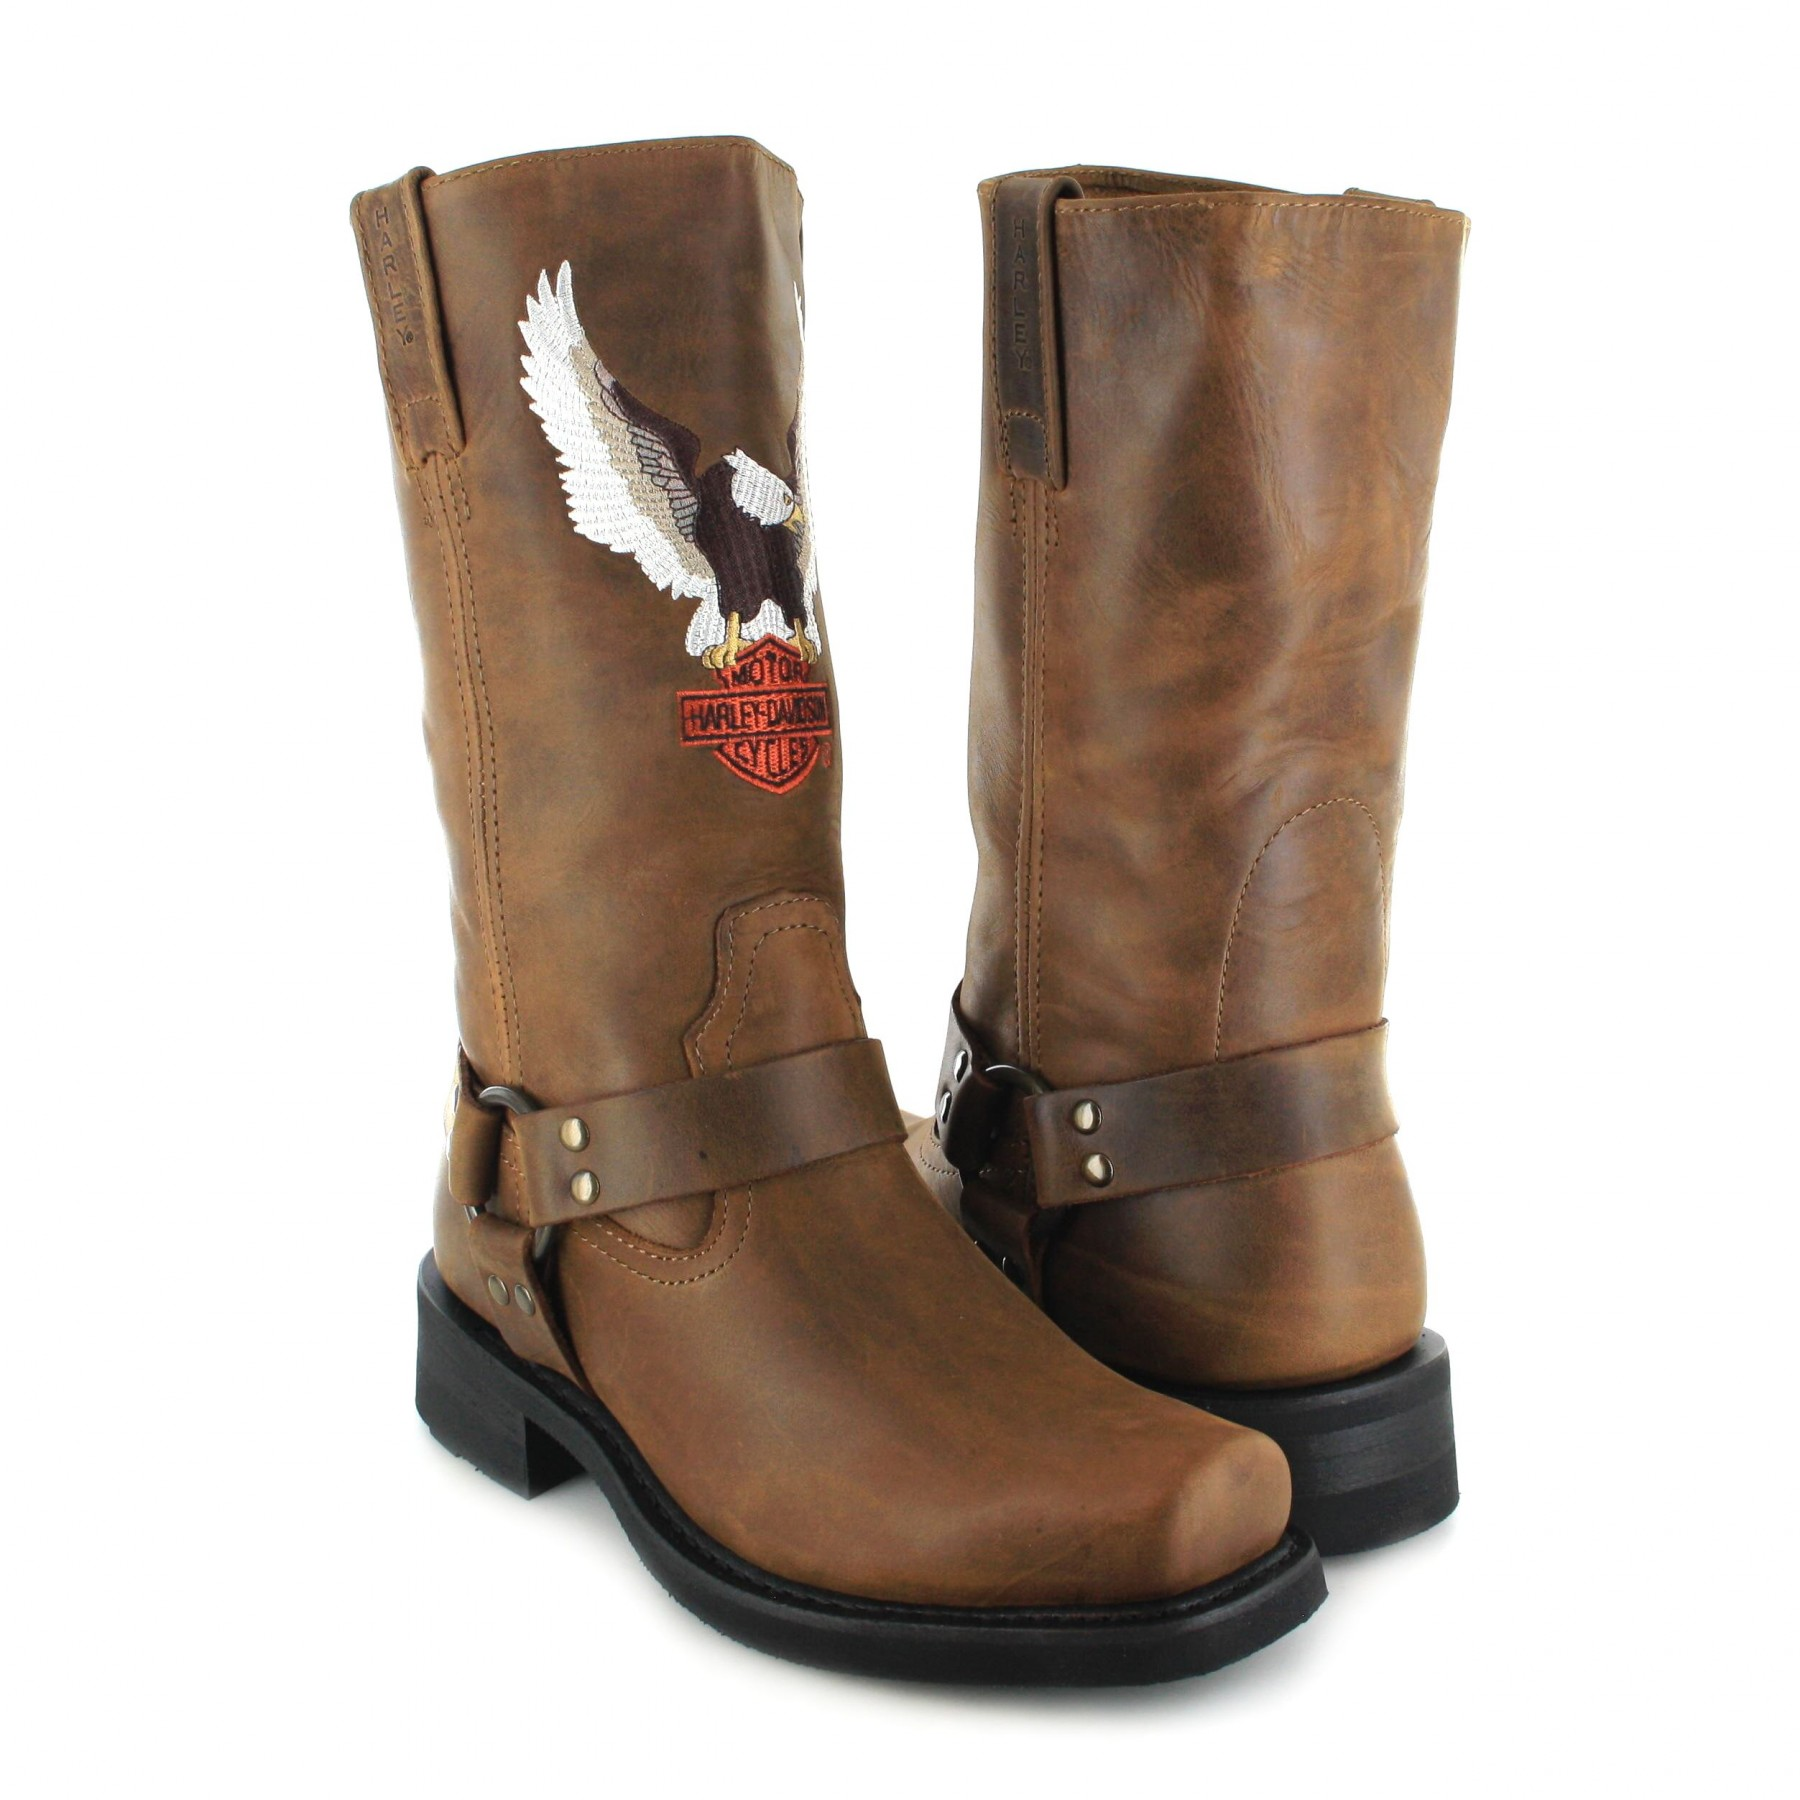 Western style fashion boots 3